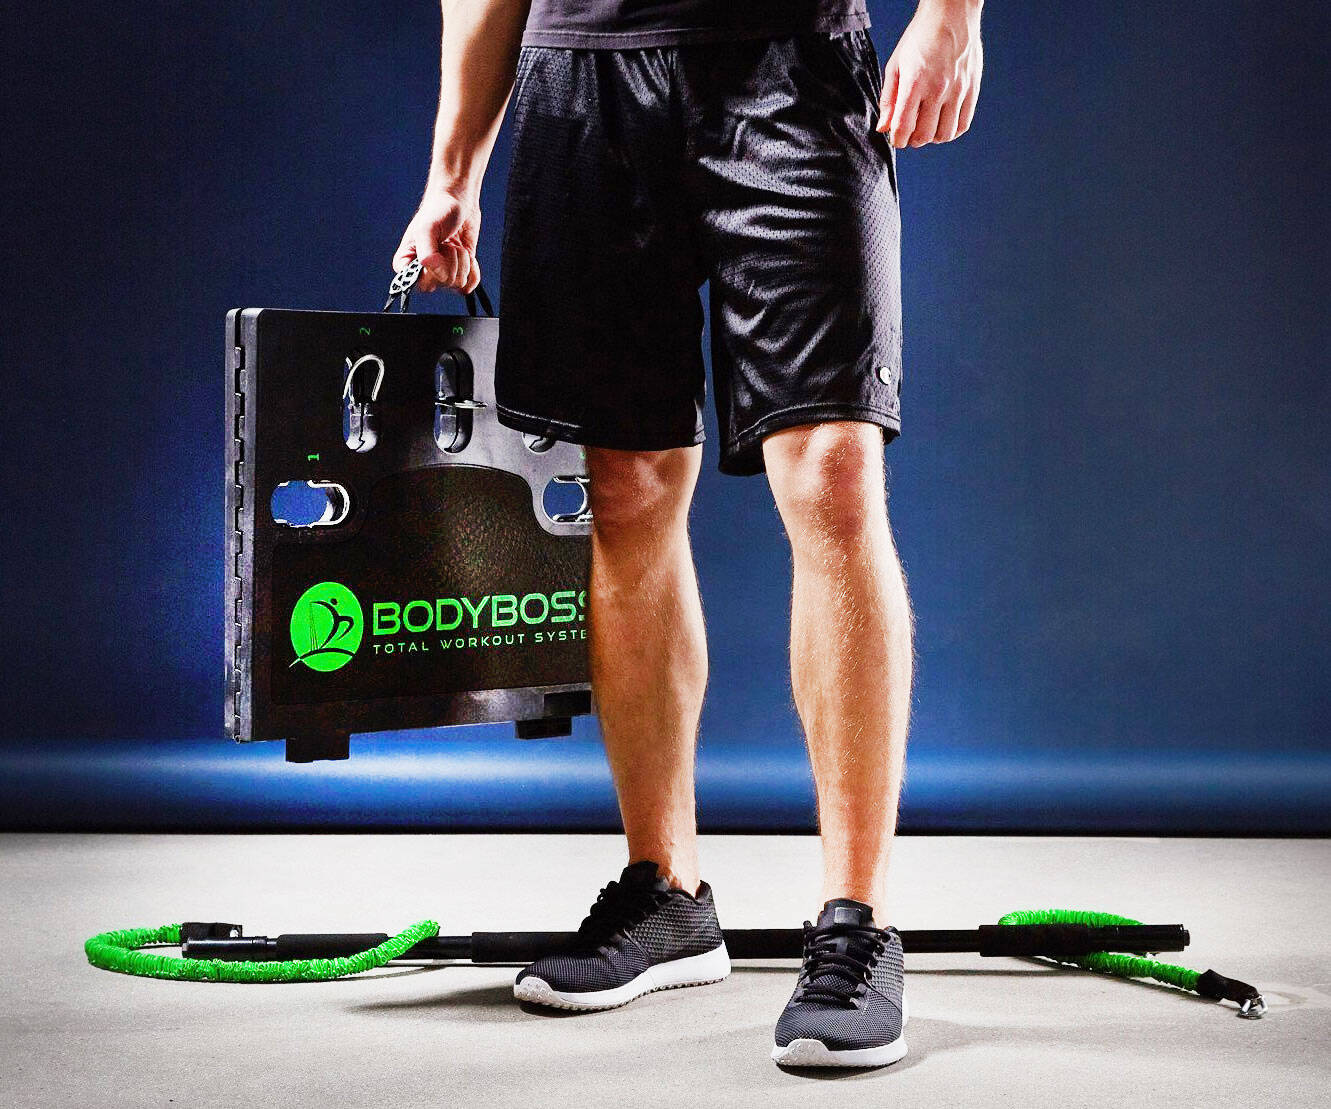 BodyBoss Portable Home Gym - http://coolthings.us